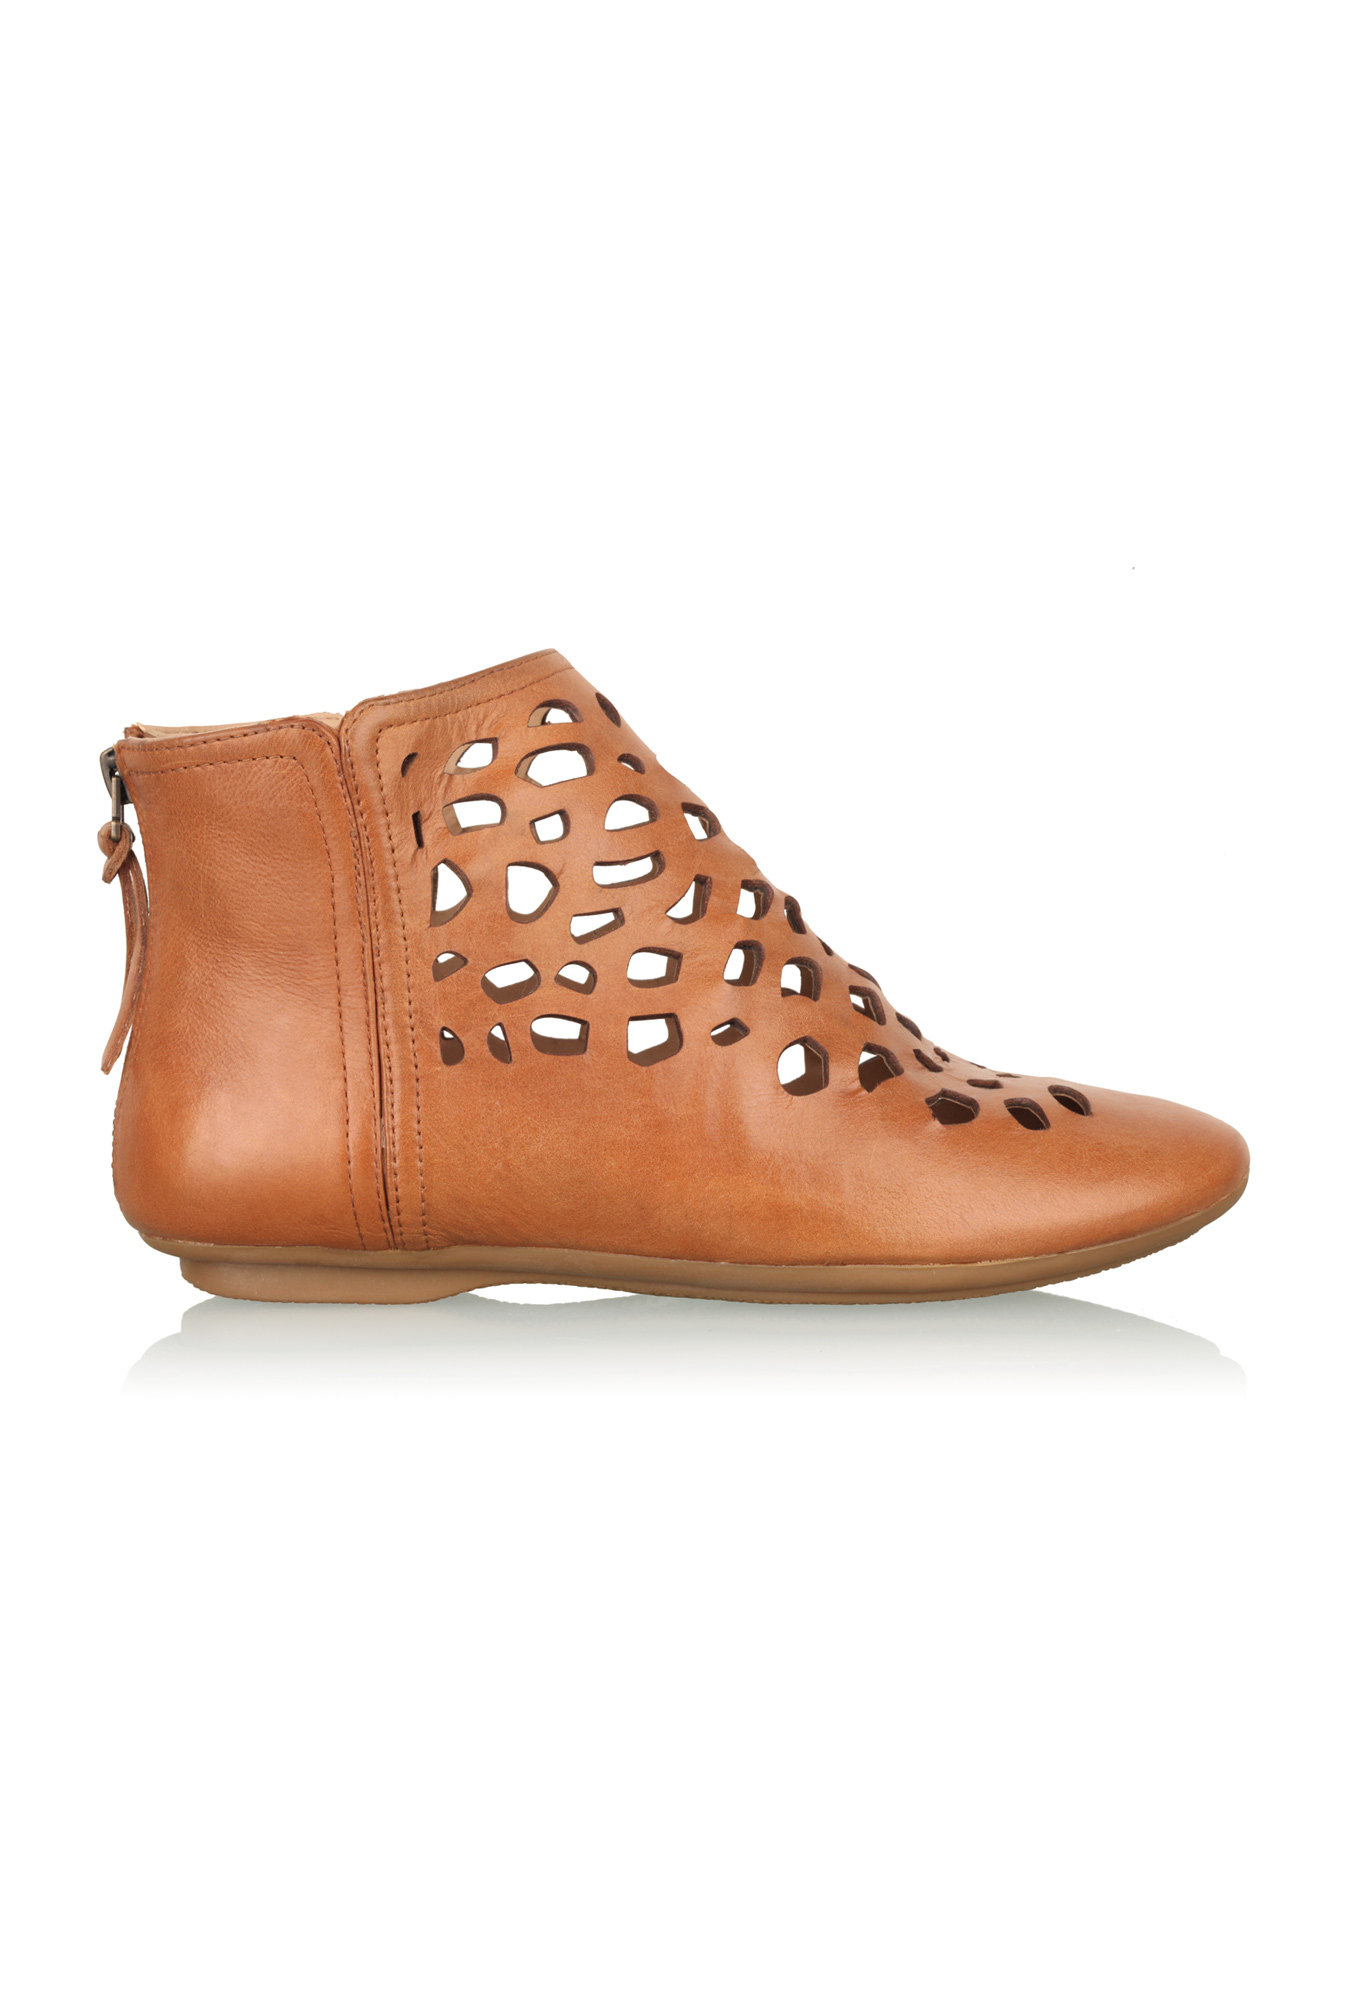 house of harlow 1960 tate cut out ankle boot in brown